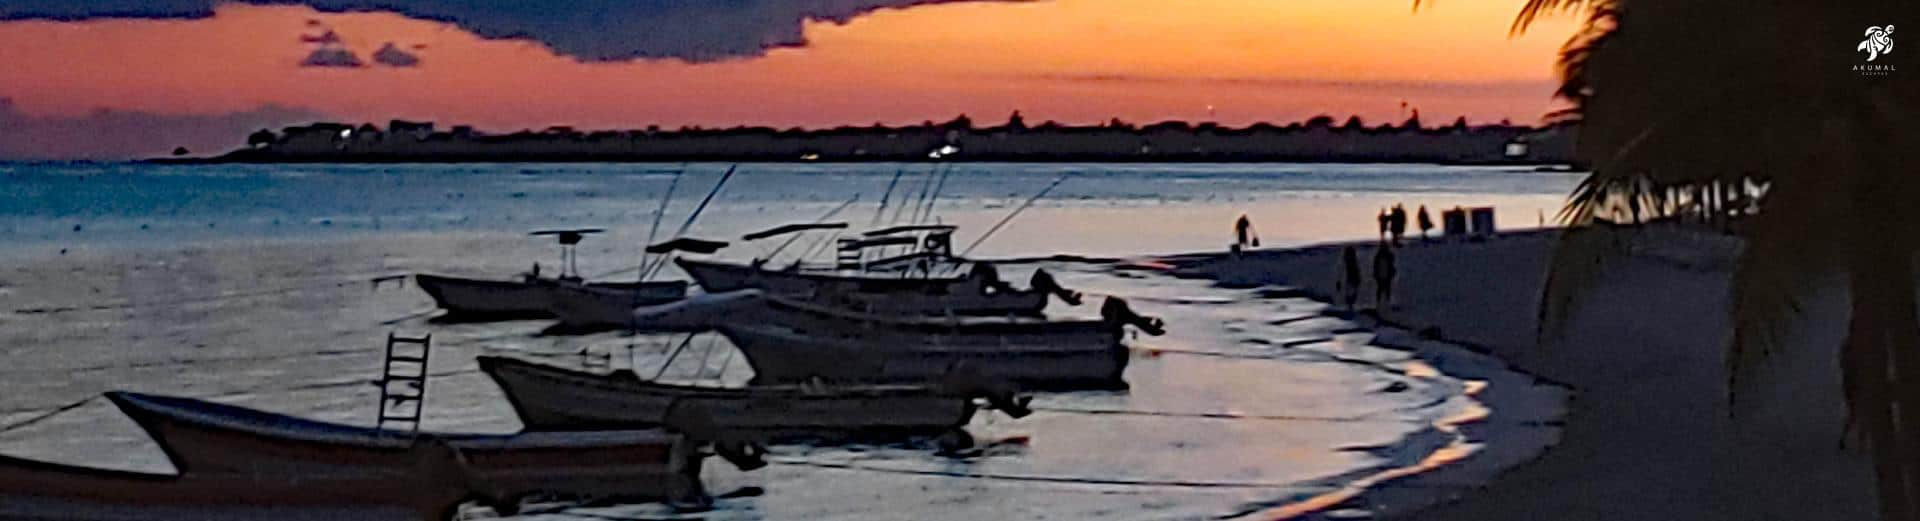 Akumals' sunsets are consistantly picture worthy, such as this one showing local fishing boats